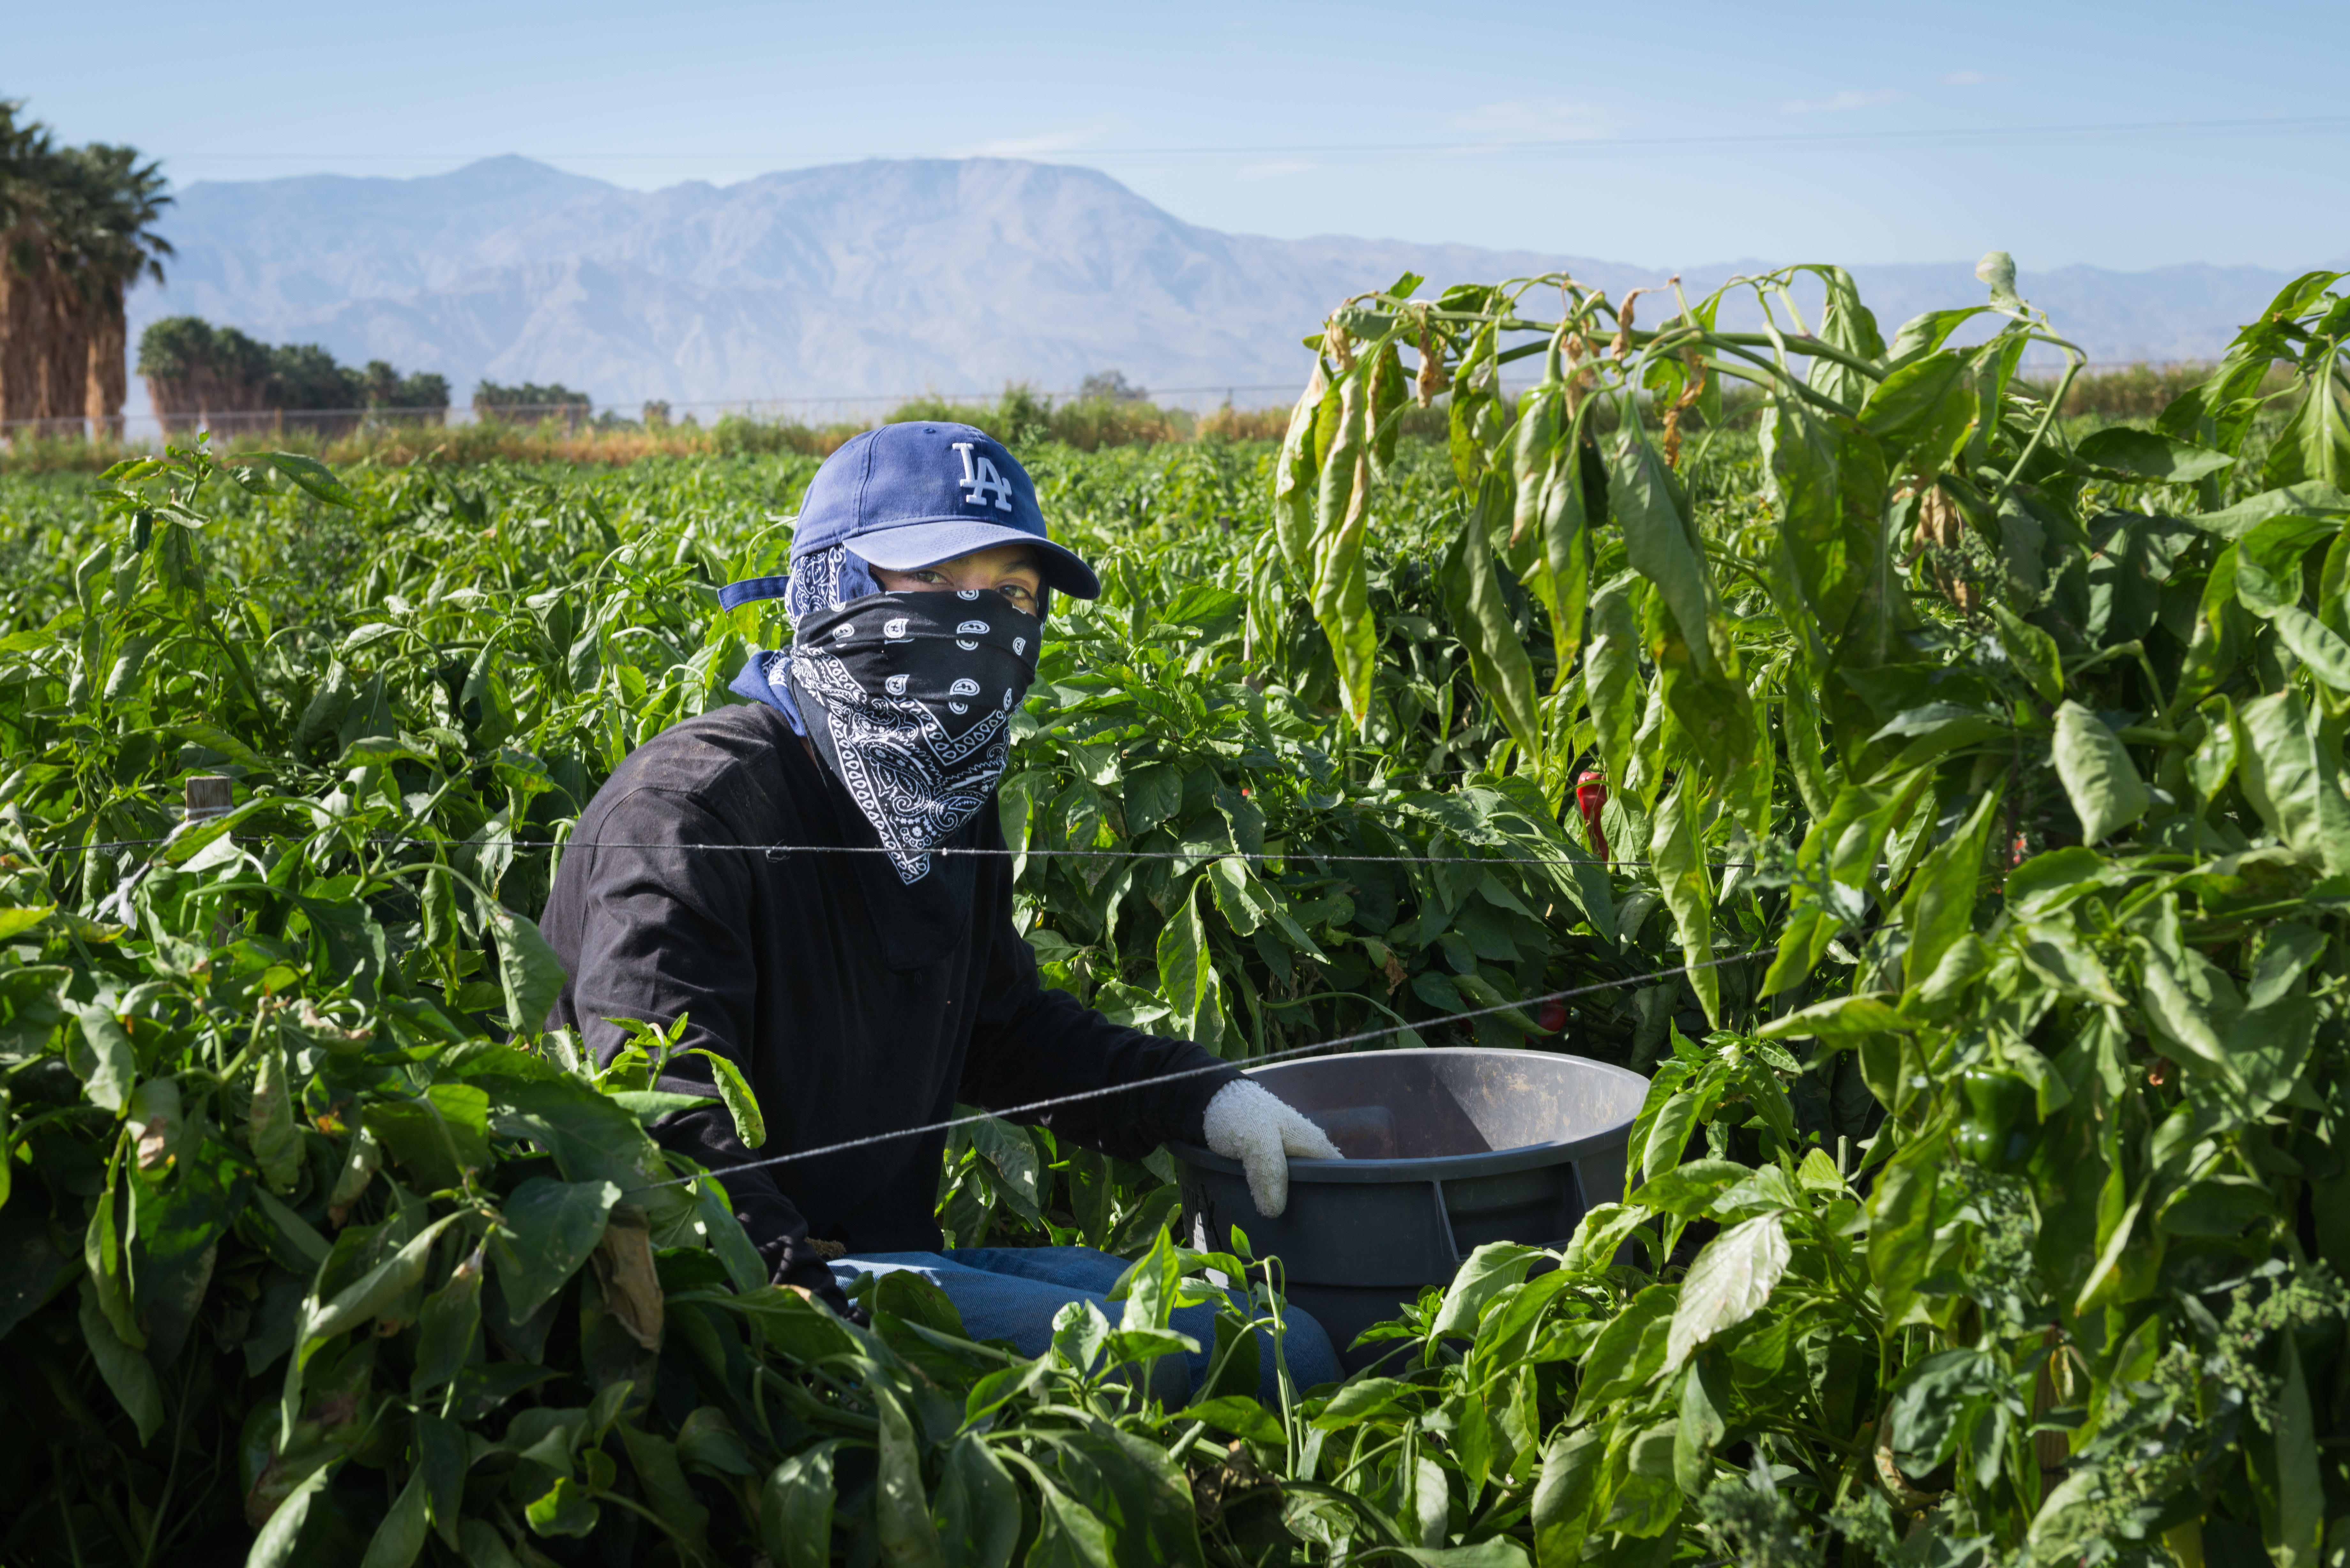 Farmworker Erwin Sandoval, 21, had been skeptical about getting the vaccine because he feared the potential side effects, but he reconsidered after learning that friends his age back home in El Salvador had died of covid.